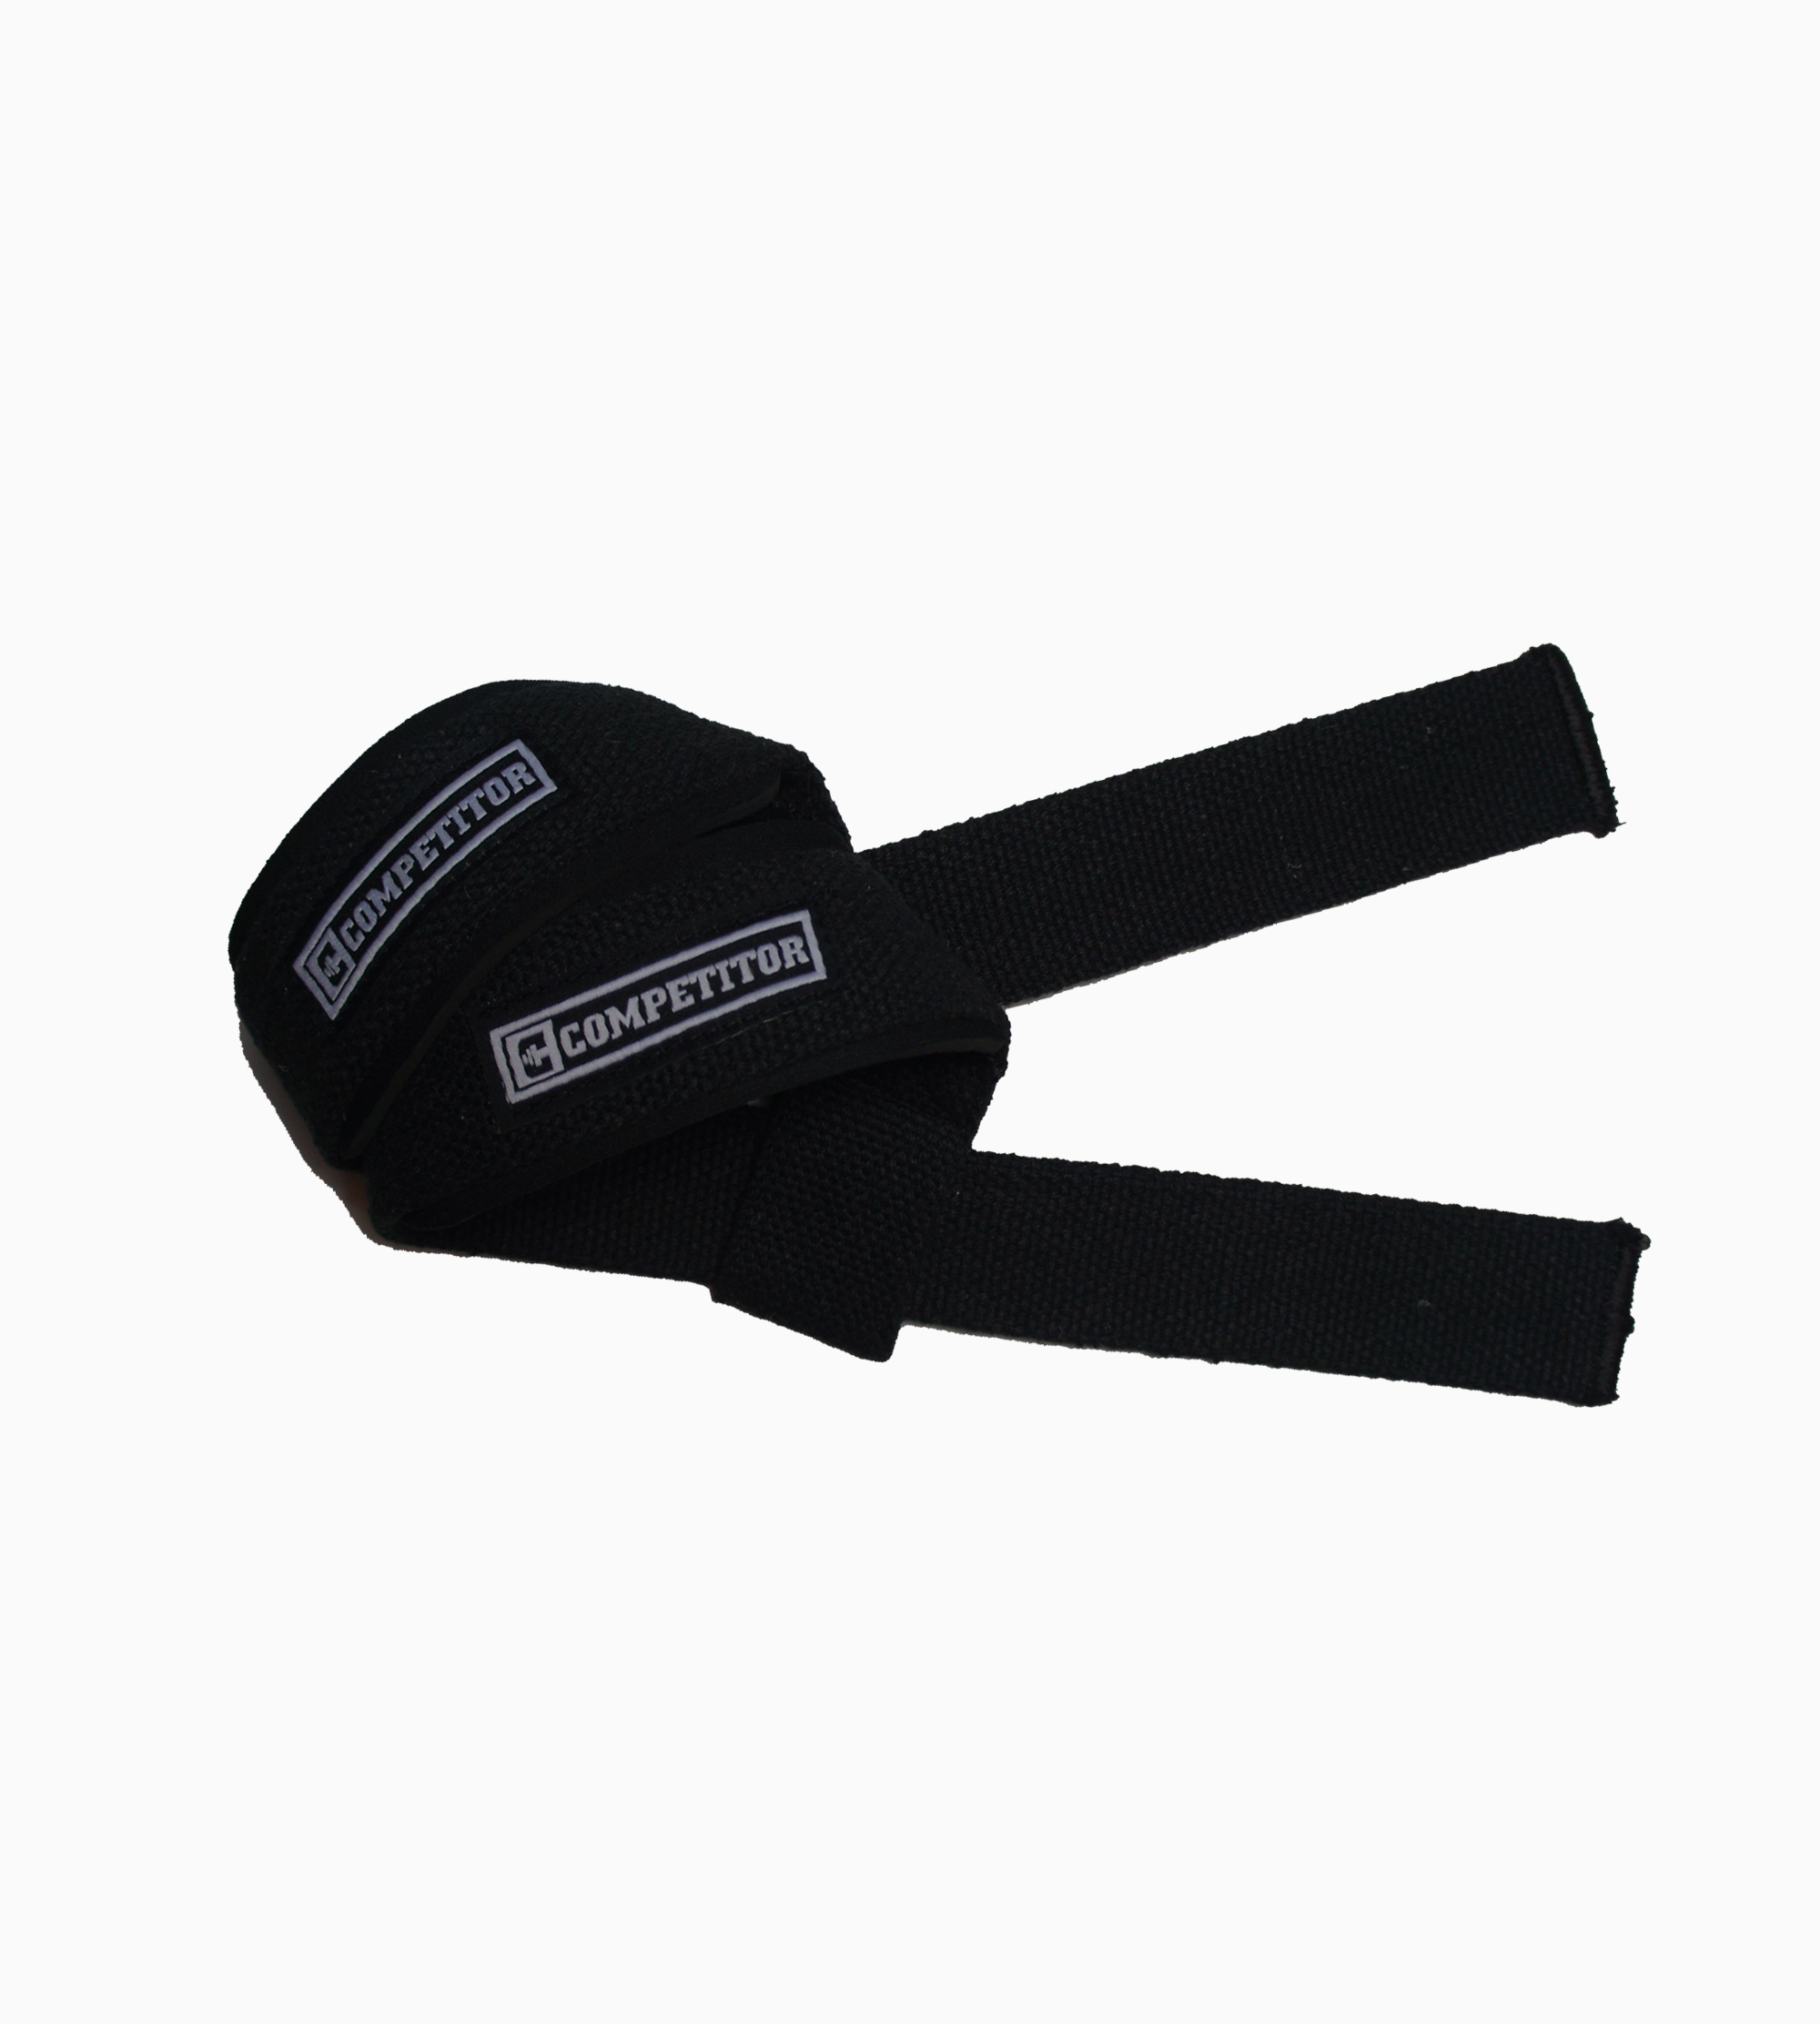 Padded Lifting Straps (Black)